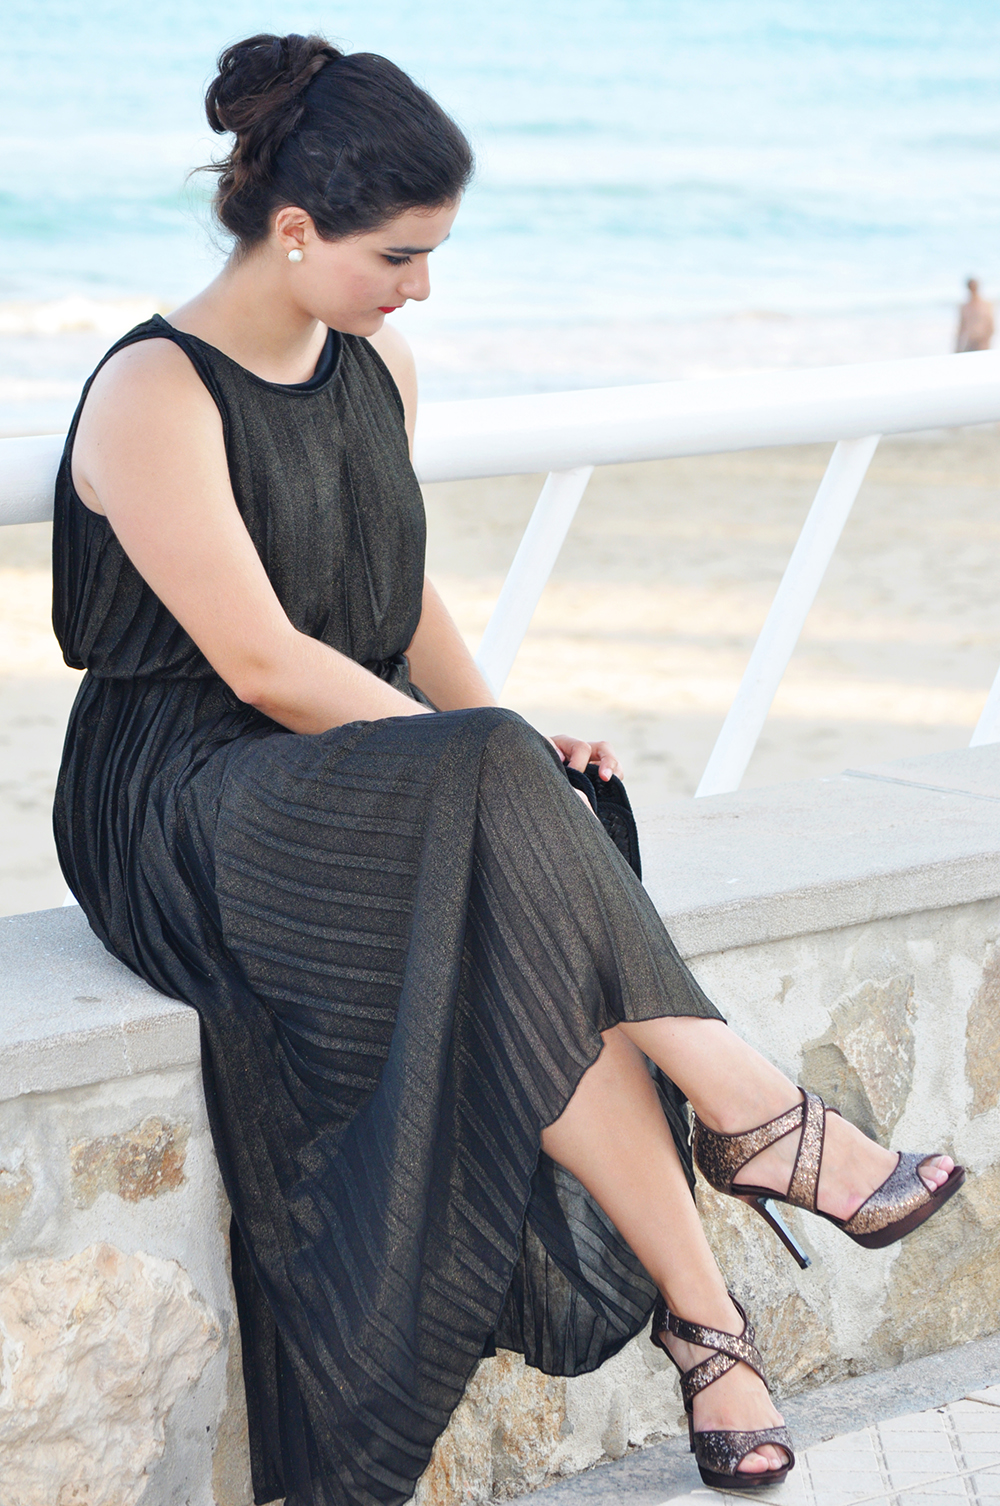 vintage fortuny delphos dress couture valencia fashion blogger, pleated dress long maxi summer somethingfashion vestido, el tiempo entre costuras time in between TV series ancient greece